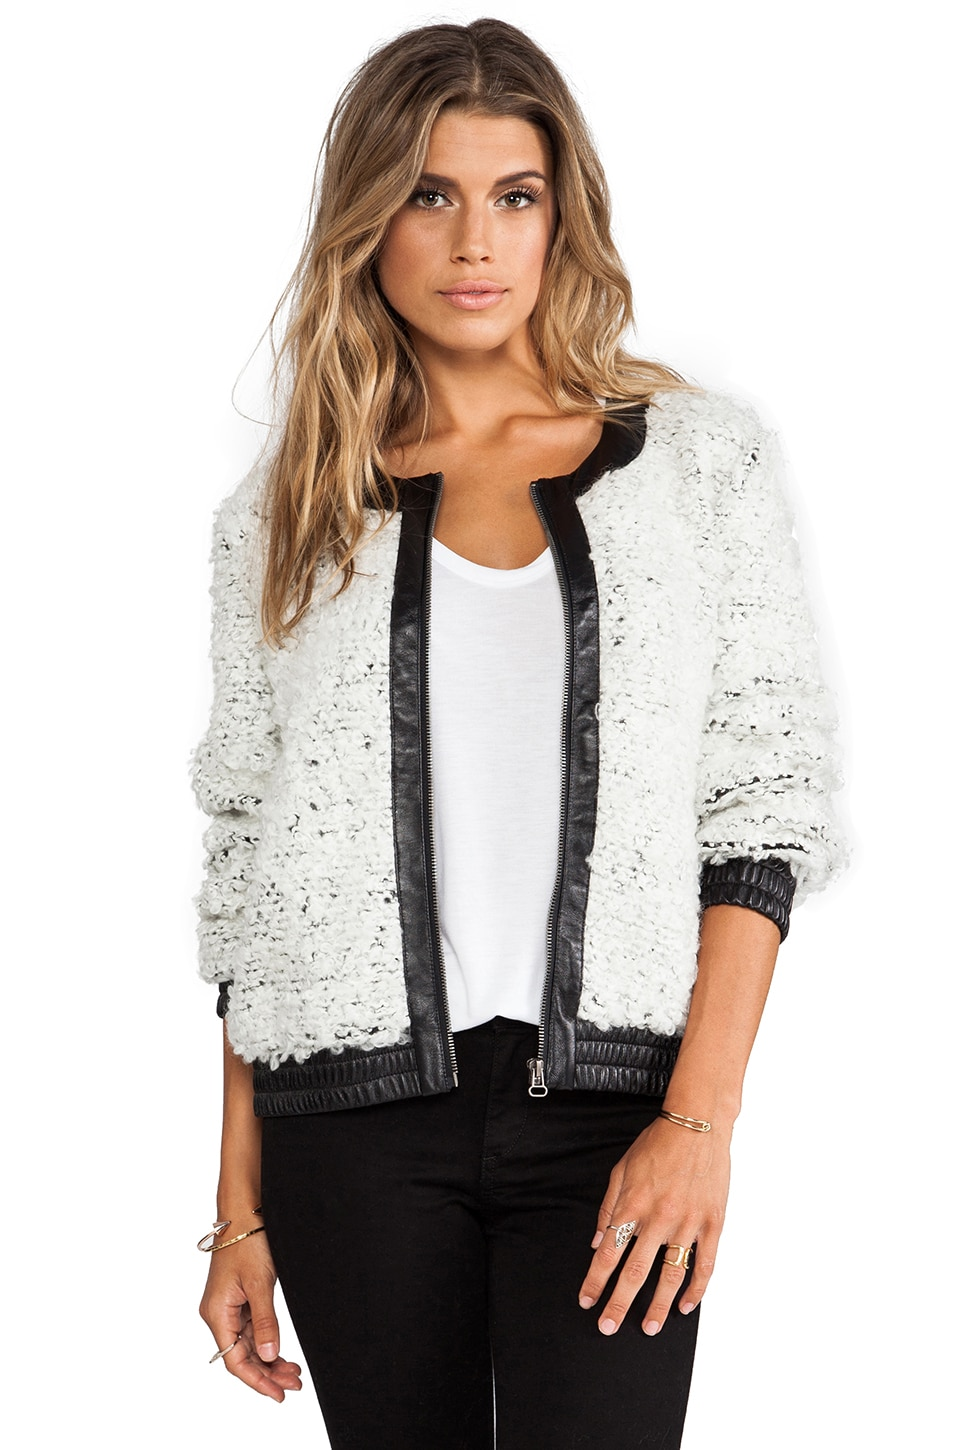 TOWNSEN Pom Pom Jacket in Cream